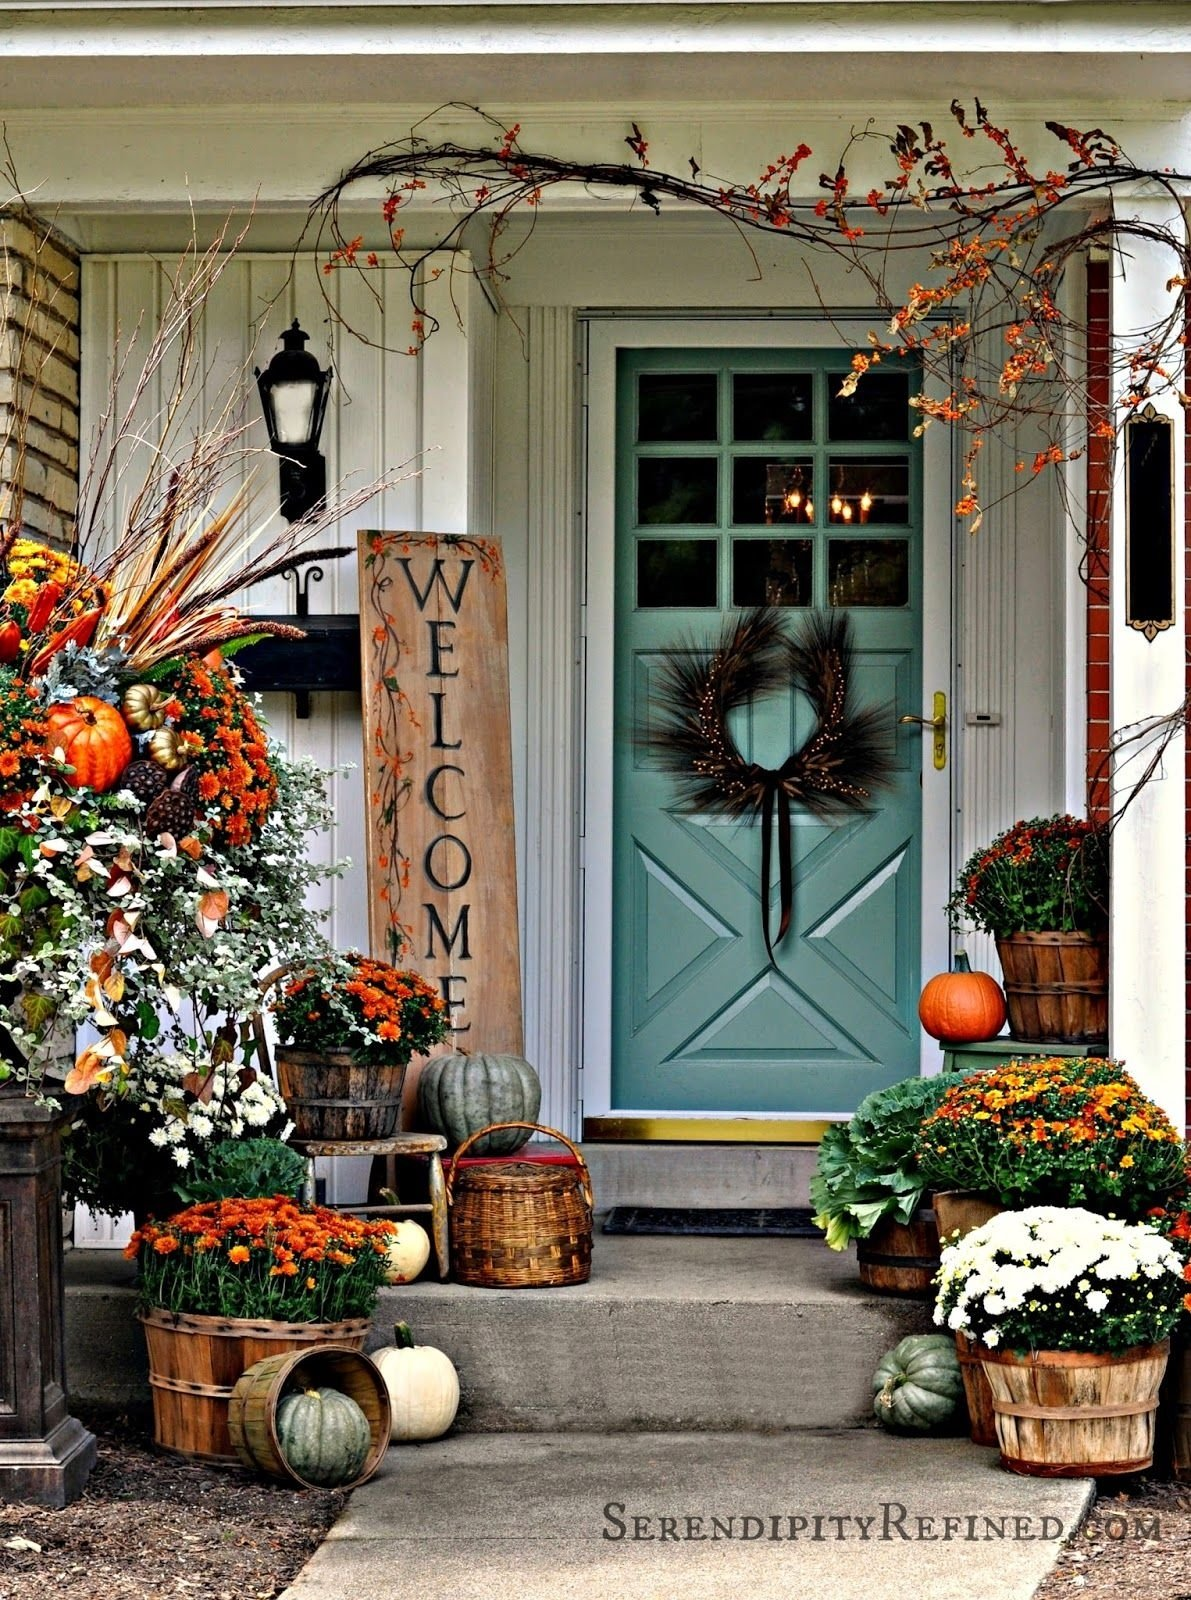 10 Lovely Front Door Fall Decorating Ideas serendipity refined fall harvest porch decor with reclaimed wood 3